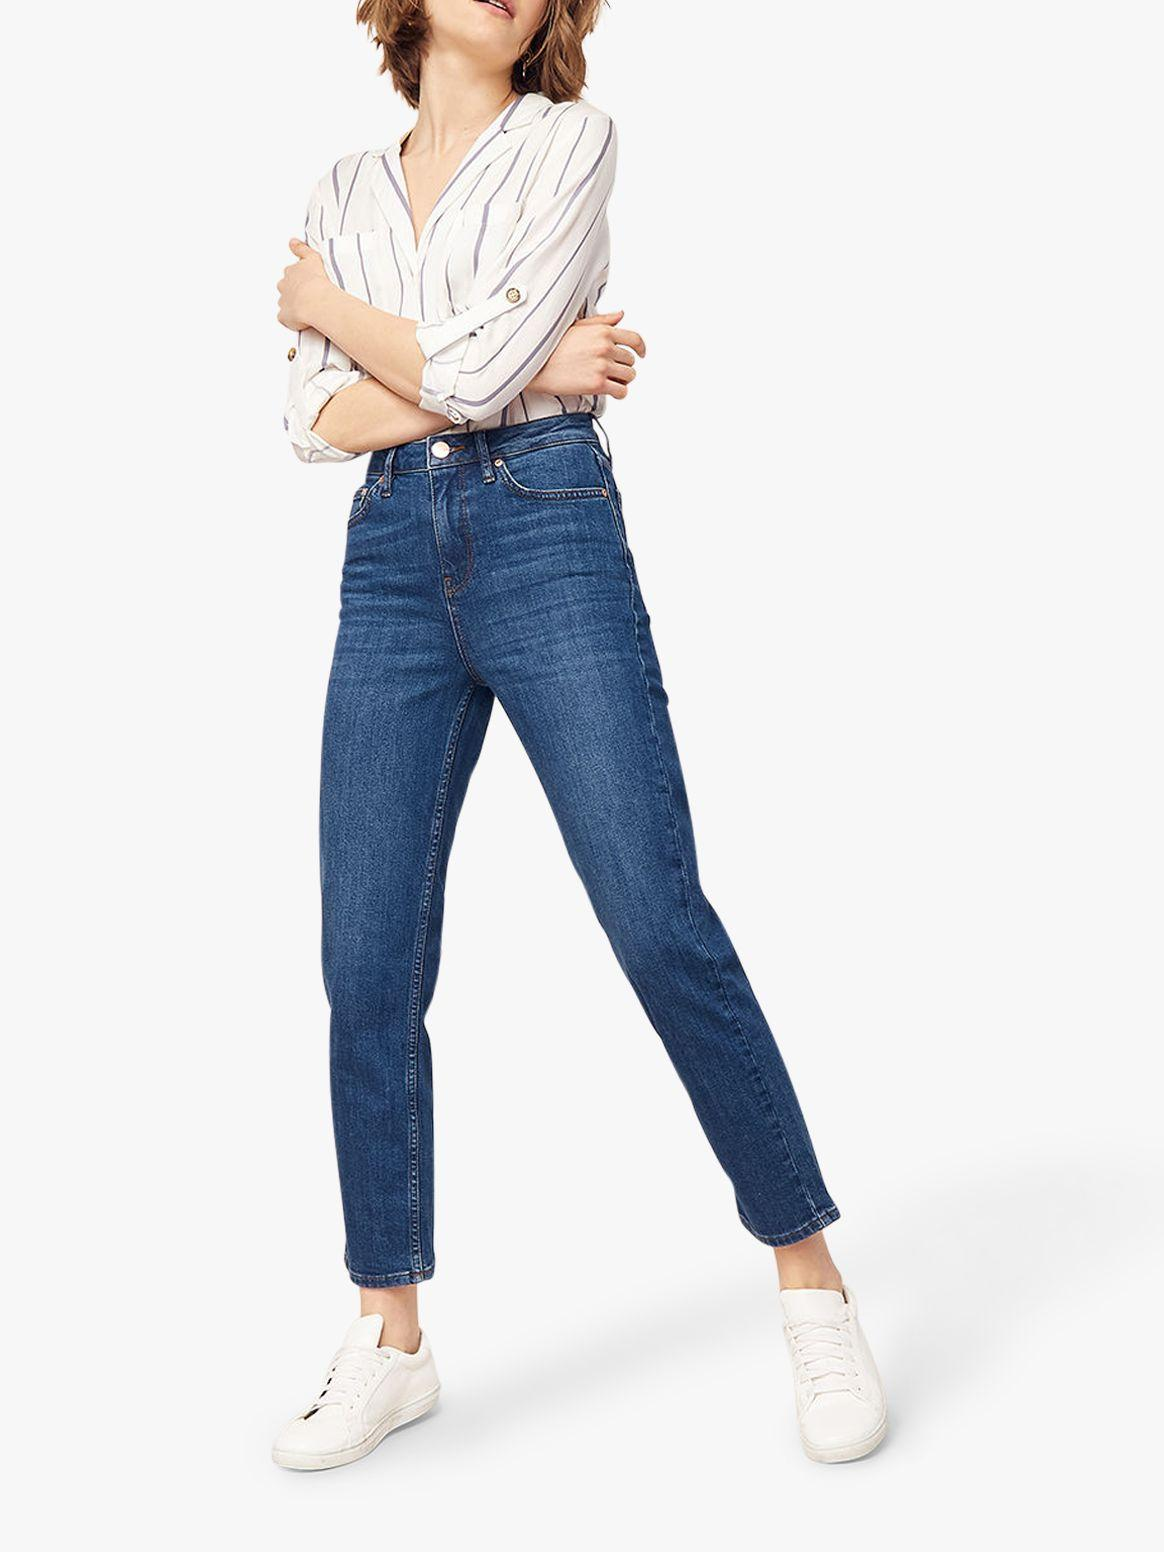 442d4edf2da7fd Oasis Denim 'olivia' Straight Leg Jeans in Blue - Save 20% - Lyst